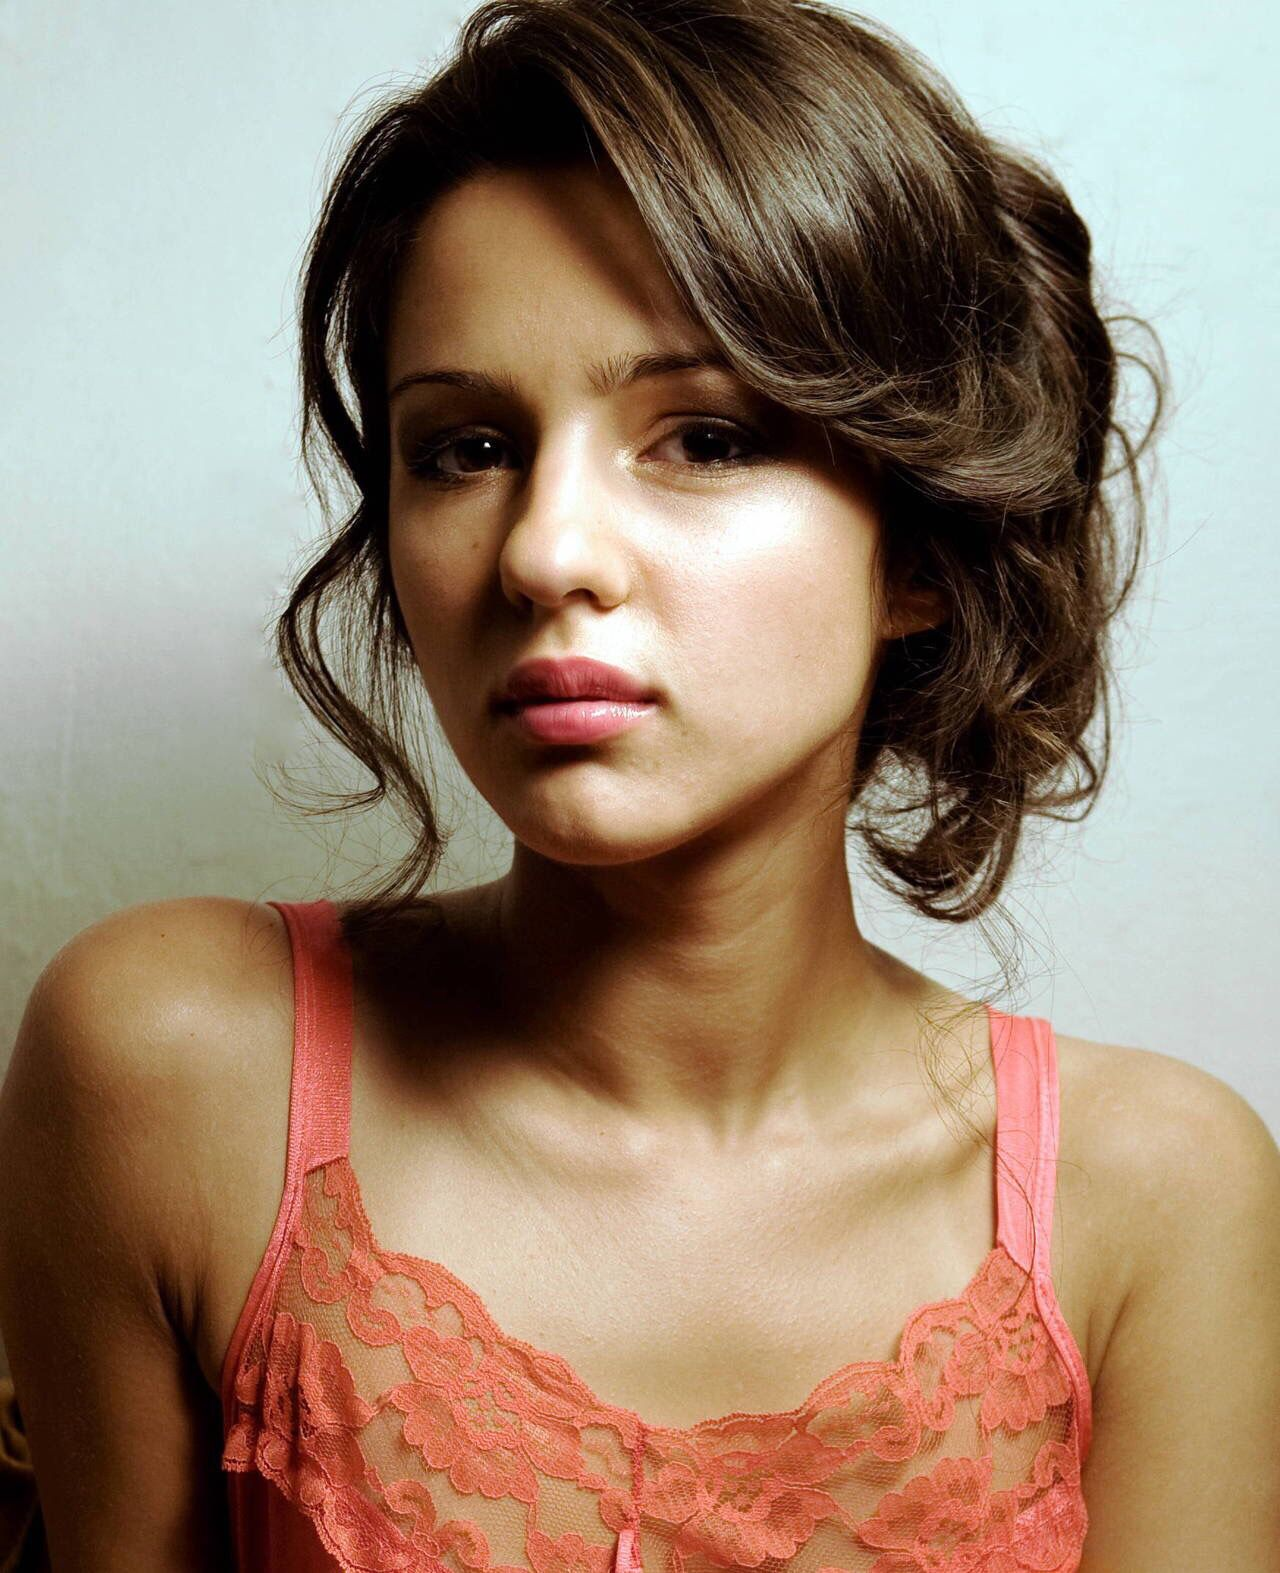 Celebrity Annet Mahendru nudes (46 photo), Topless, Paparazzi, Twitter, butt 2015